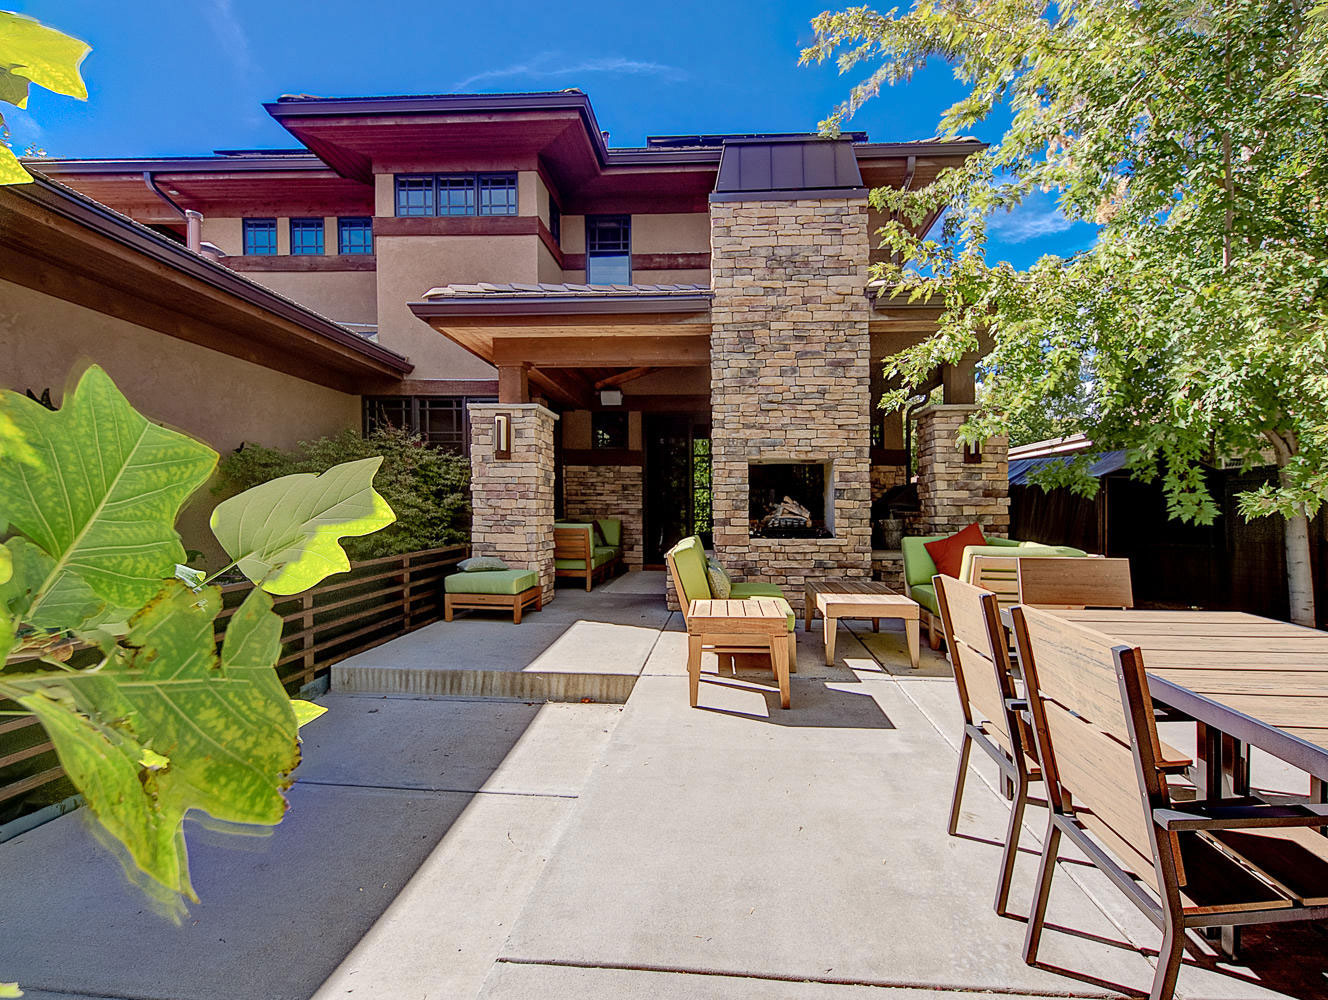 Elegant and modern house with a rustic exterior 7 Elegant and modern house with a rustic exterior